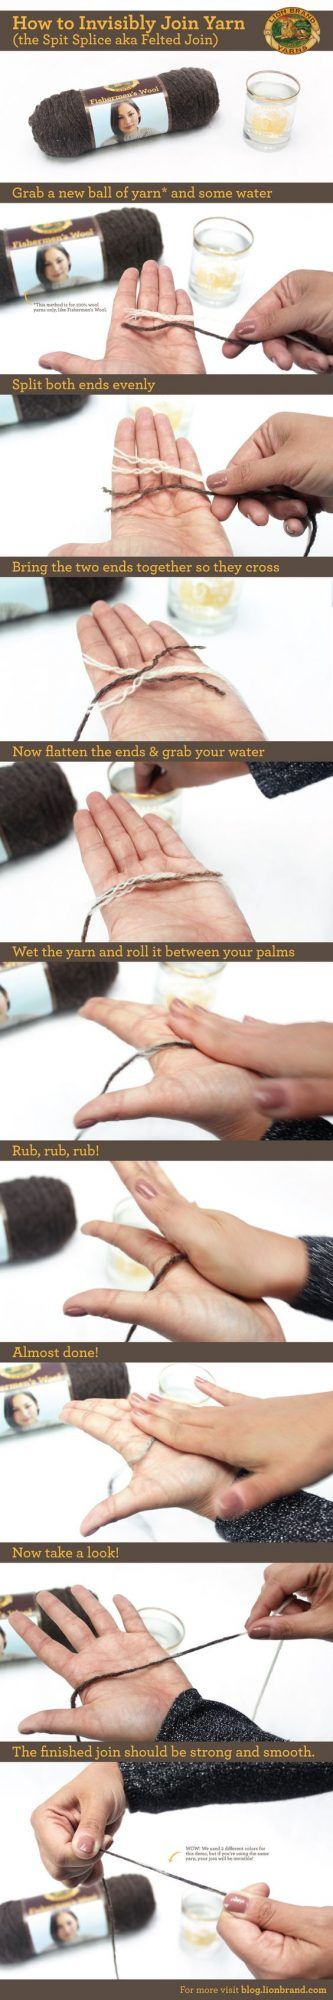 How to invisible join your yarn! Featured 20 More Incredible Yarn Hacks To Make Your Next Project Easier! http://www.hearthandmade.co.uk/yarn-hacks-2/?utm_campaign=coschedule&utm_source=pinterest&utm_medium=Heart%20Handmade%20UK&utm_content=20%20More%20Incredible%20Yarn%20Hacks%20To%20Make%20Your%20Next%20Project%20Easier%21